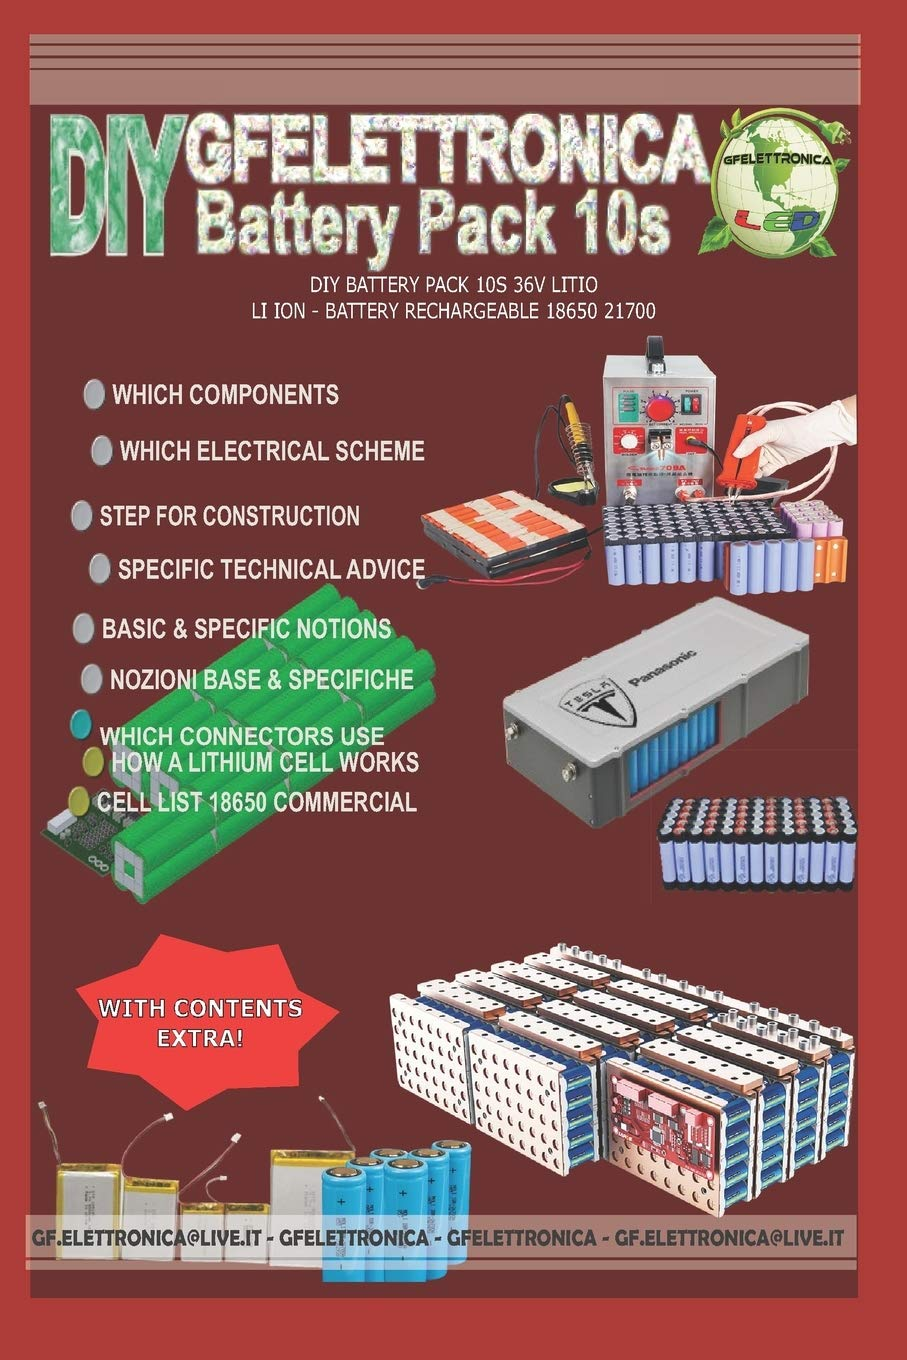 DIY BATTERY PACK 10S 36V LITIO - LI ION - BATTERY RECHARGEABLE ...